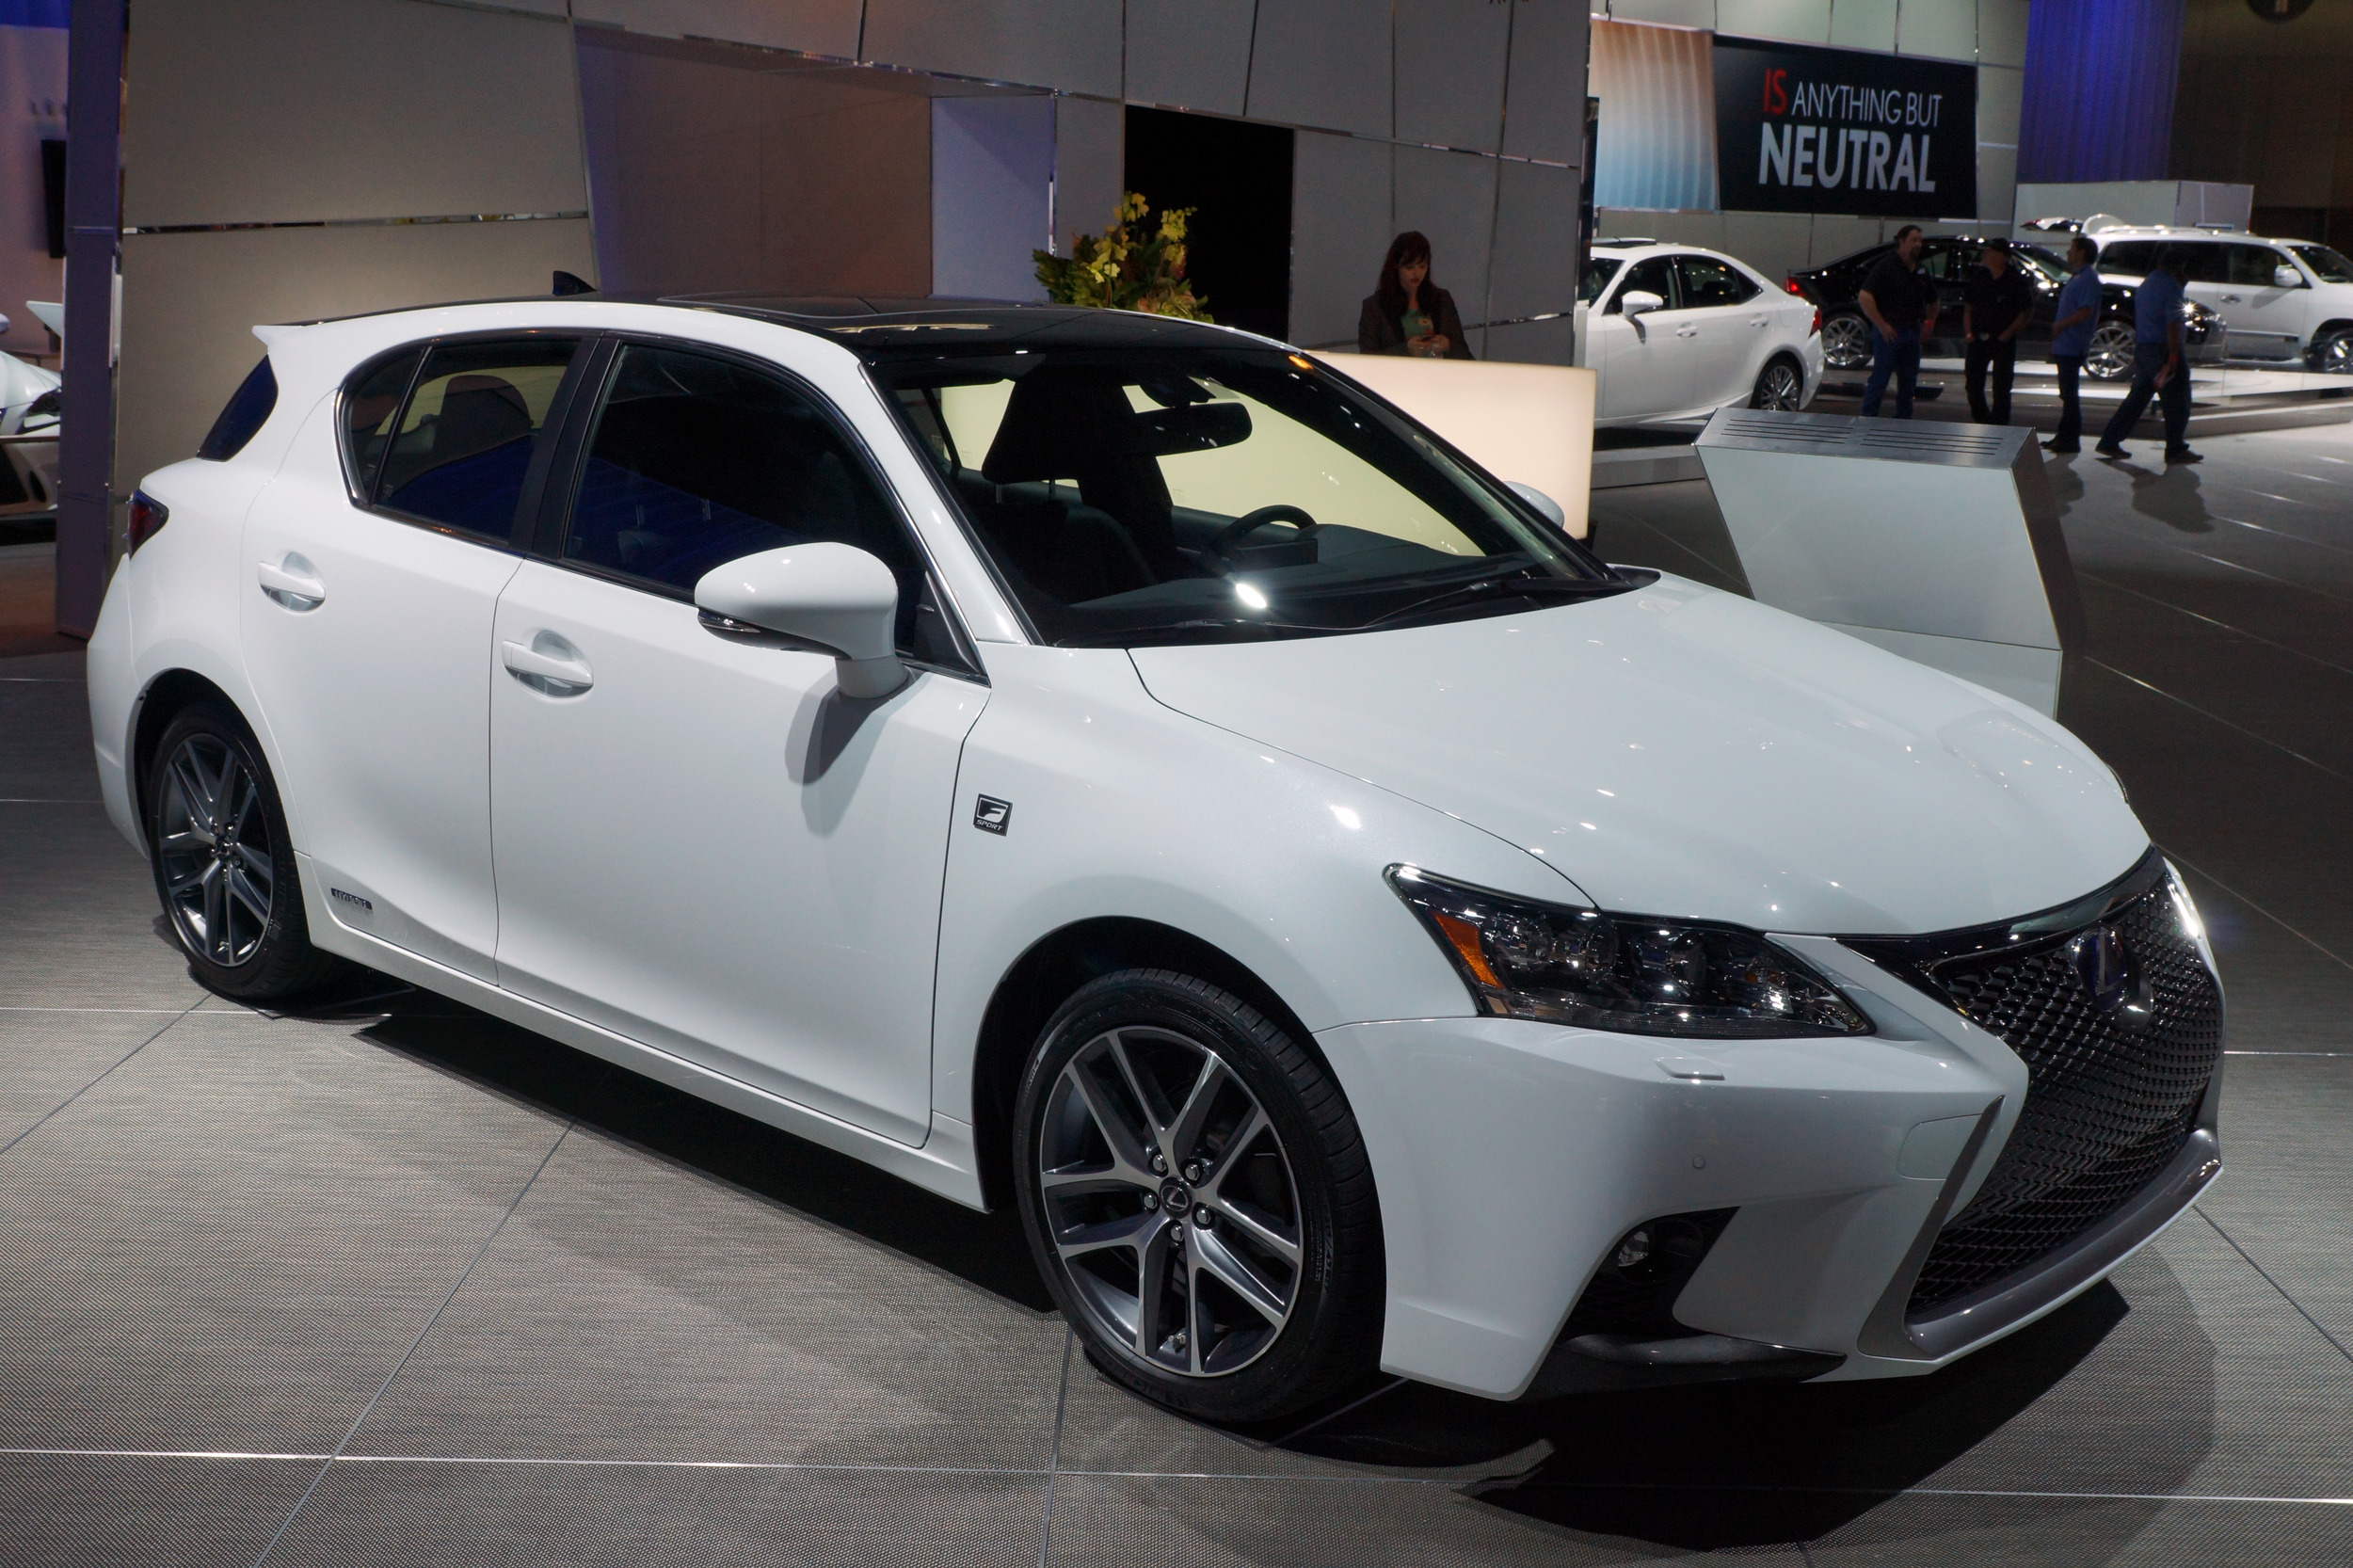 Lexus Unveils Facelifted 2014 CT 200h pact Luxury Hybrid